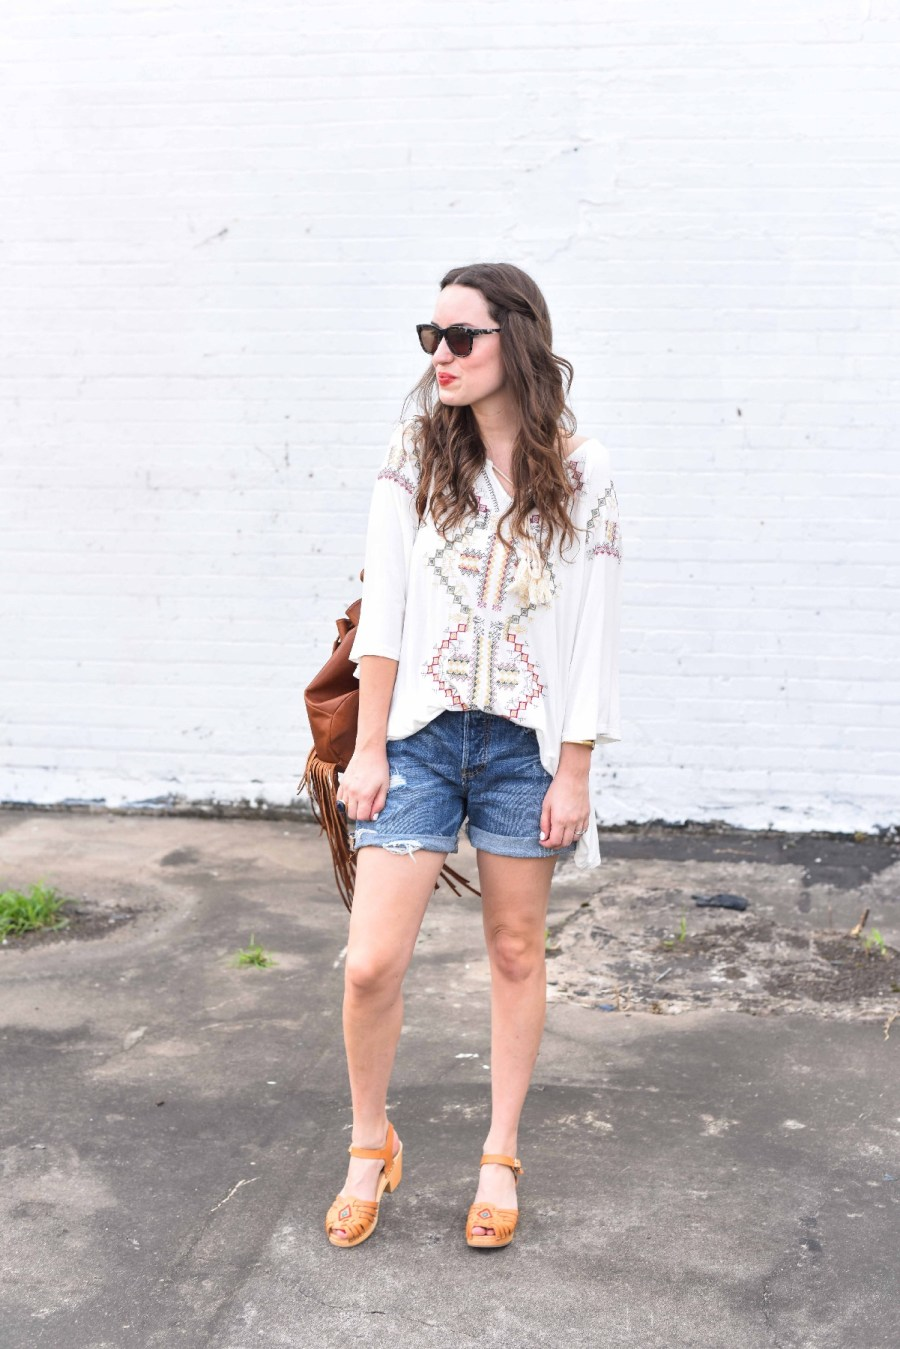 true religion fringe backpack, embroidered boho top, levis distressed shorts, lone star looking glass, houston fashion blogger, weekend outfit inspiration